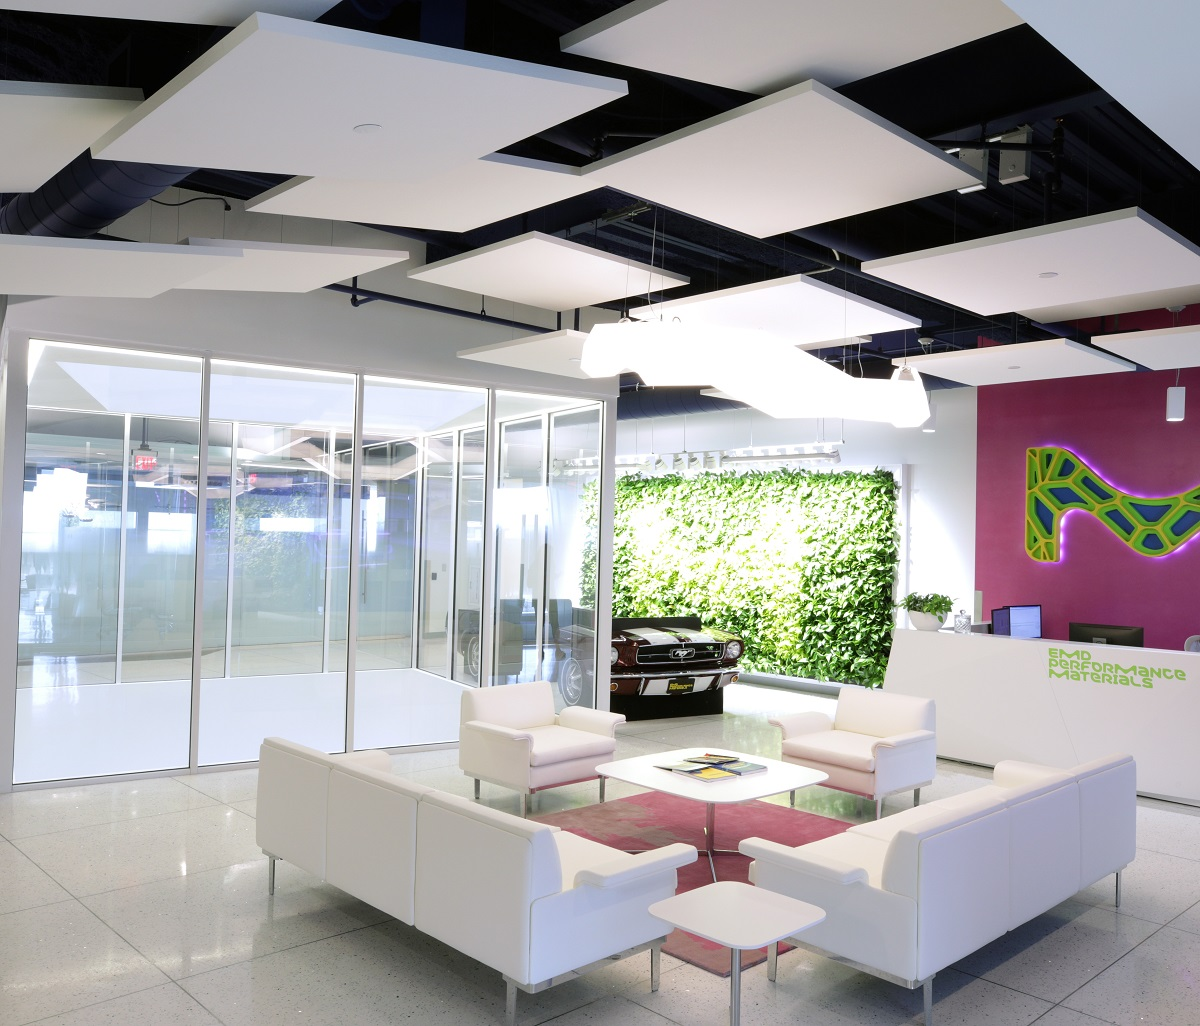 Case Study Substitution Saves Innovative Ceiling Design